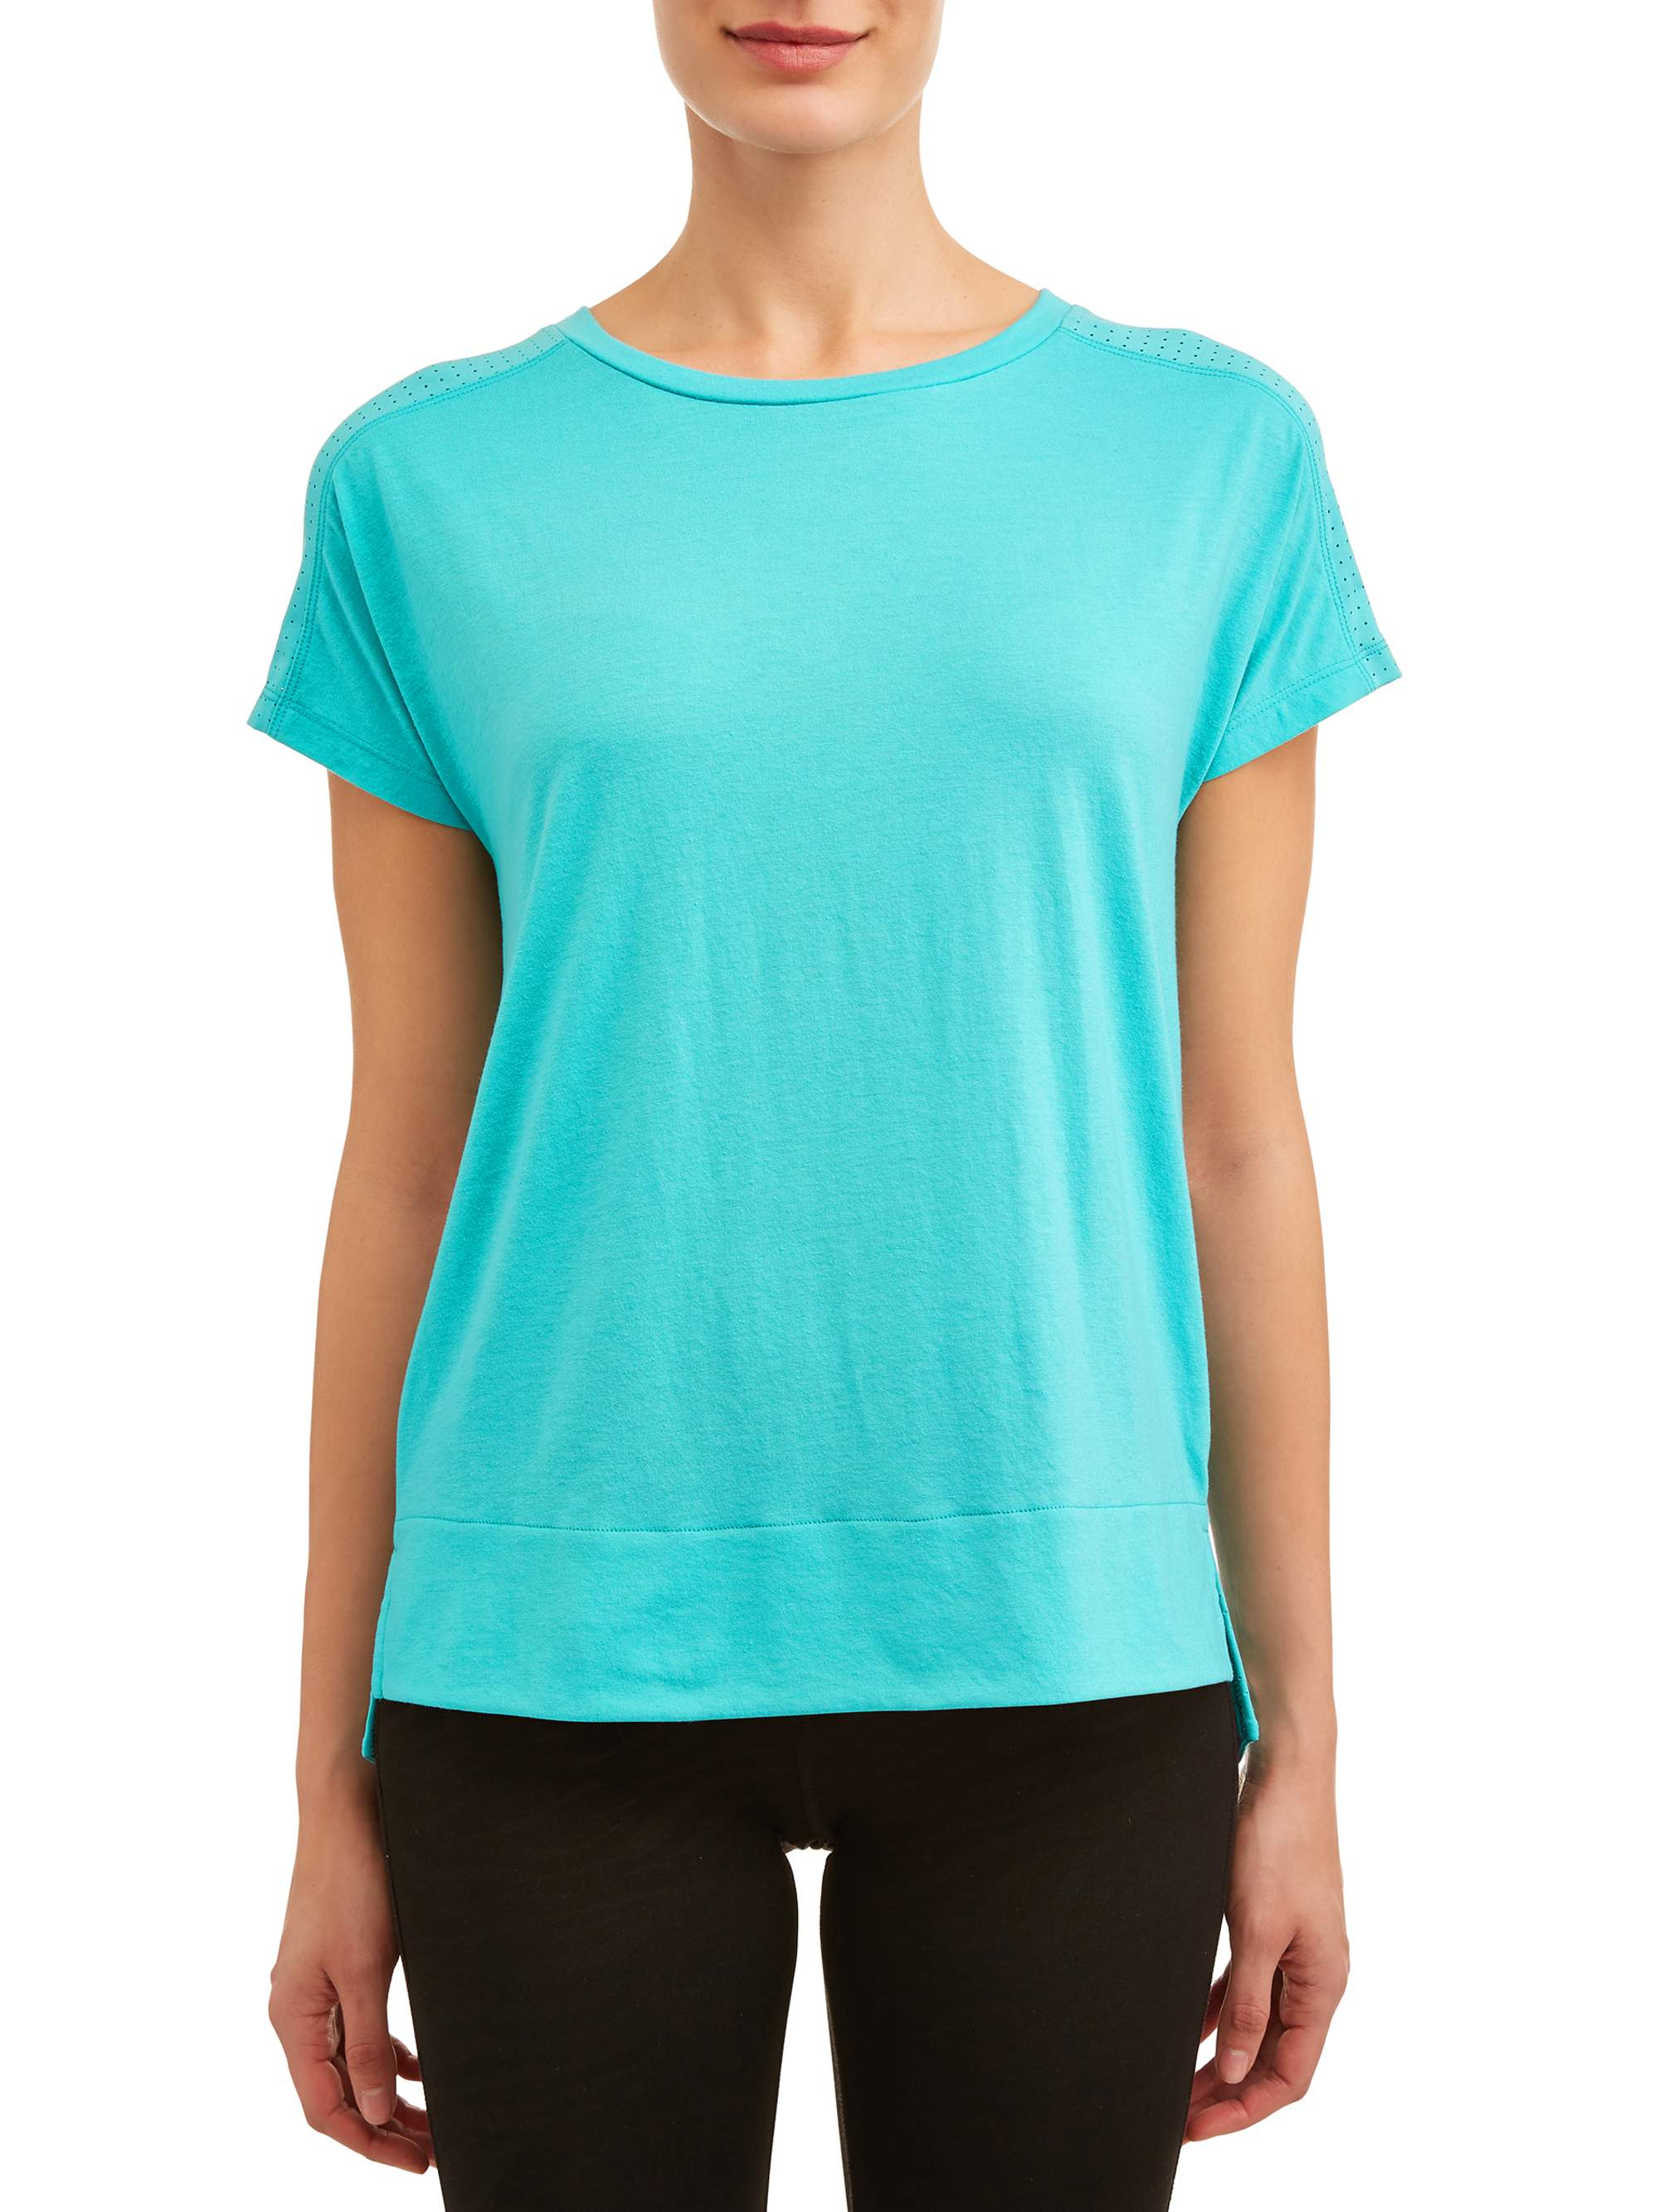 Women's Athletic Perforated Tee